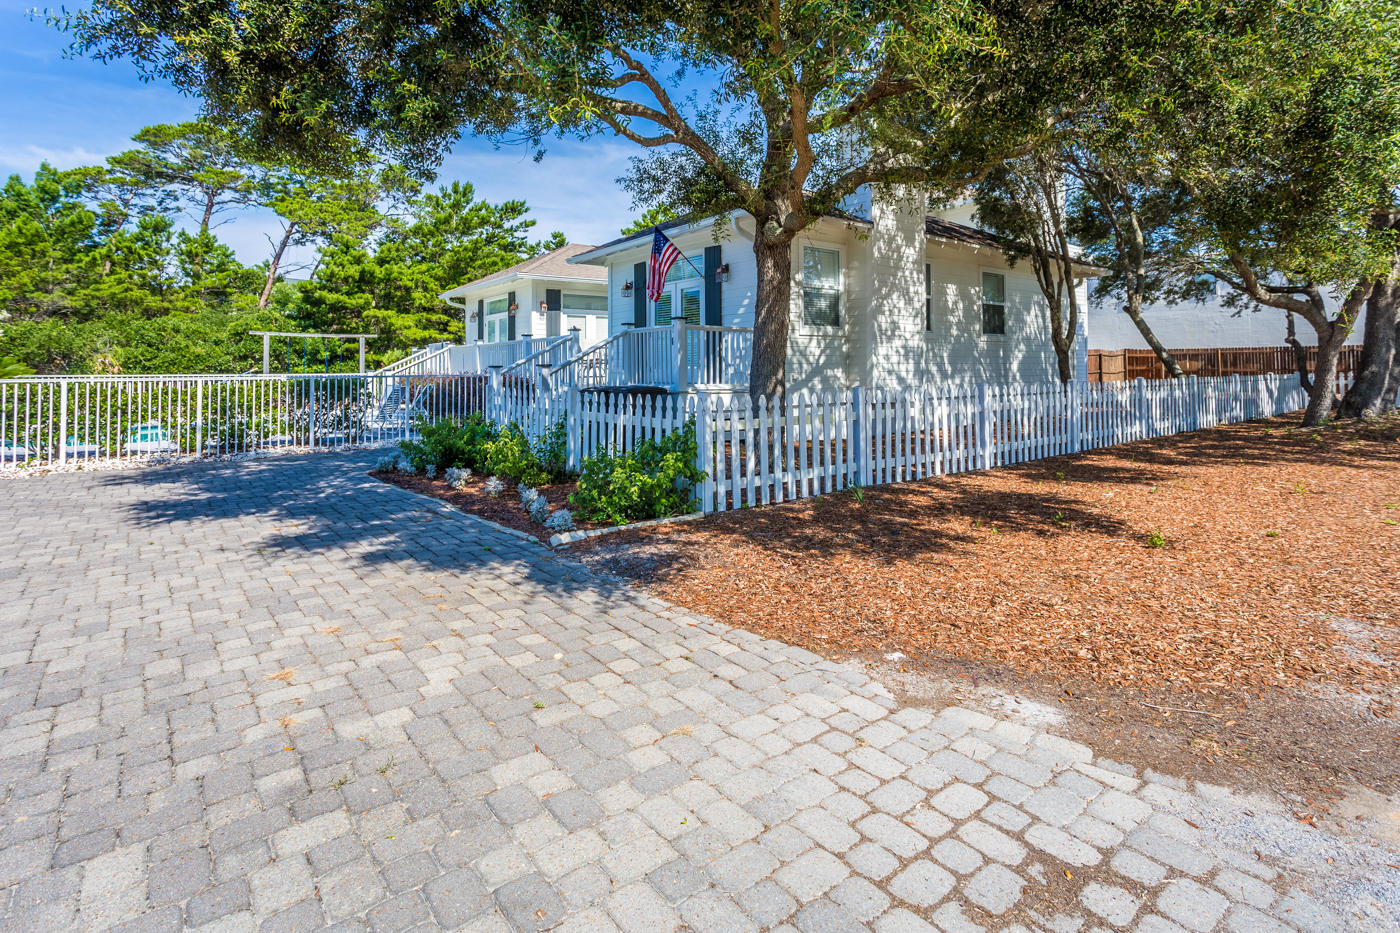 Home comes completely furnished and ready for home owners use and put on vacation rental estimated a